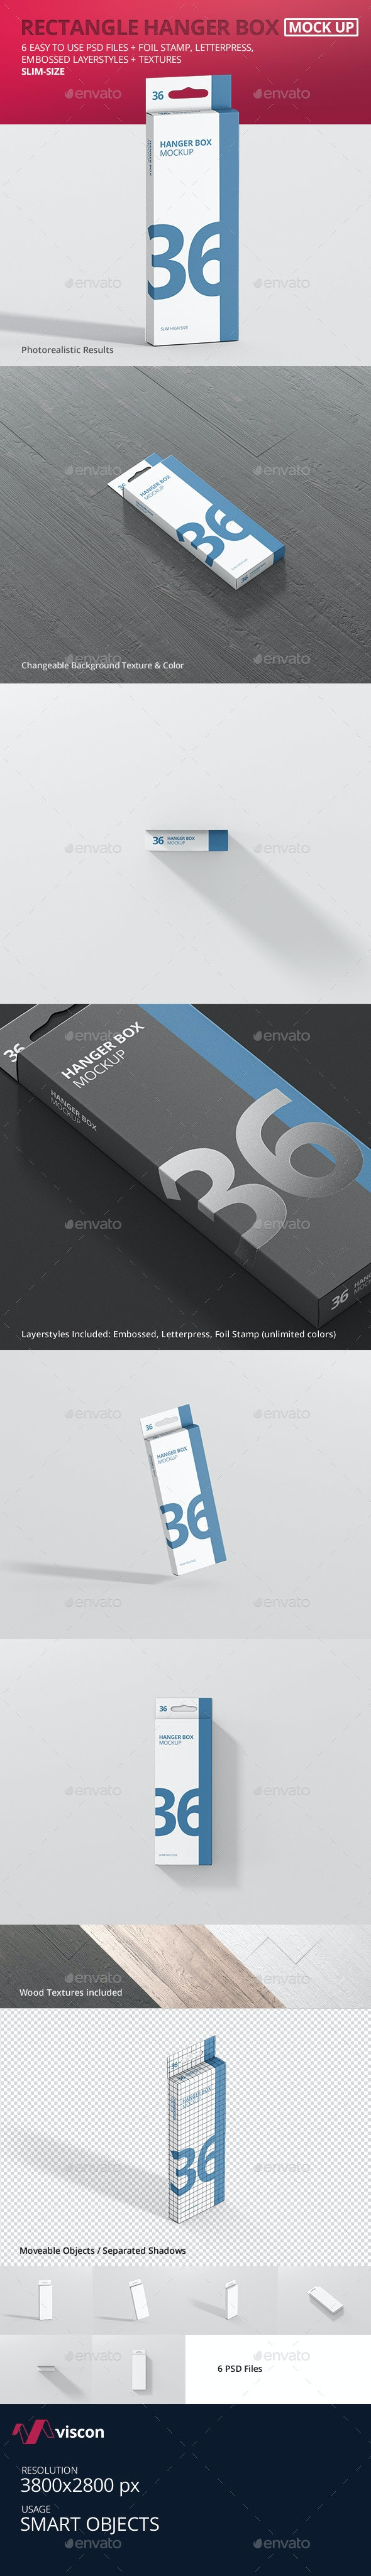 Box Mockup - Rectangle Slim High with Hanger - Miscellaneous Packaging